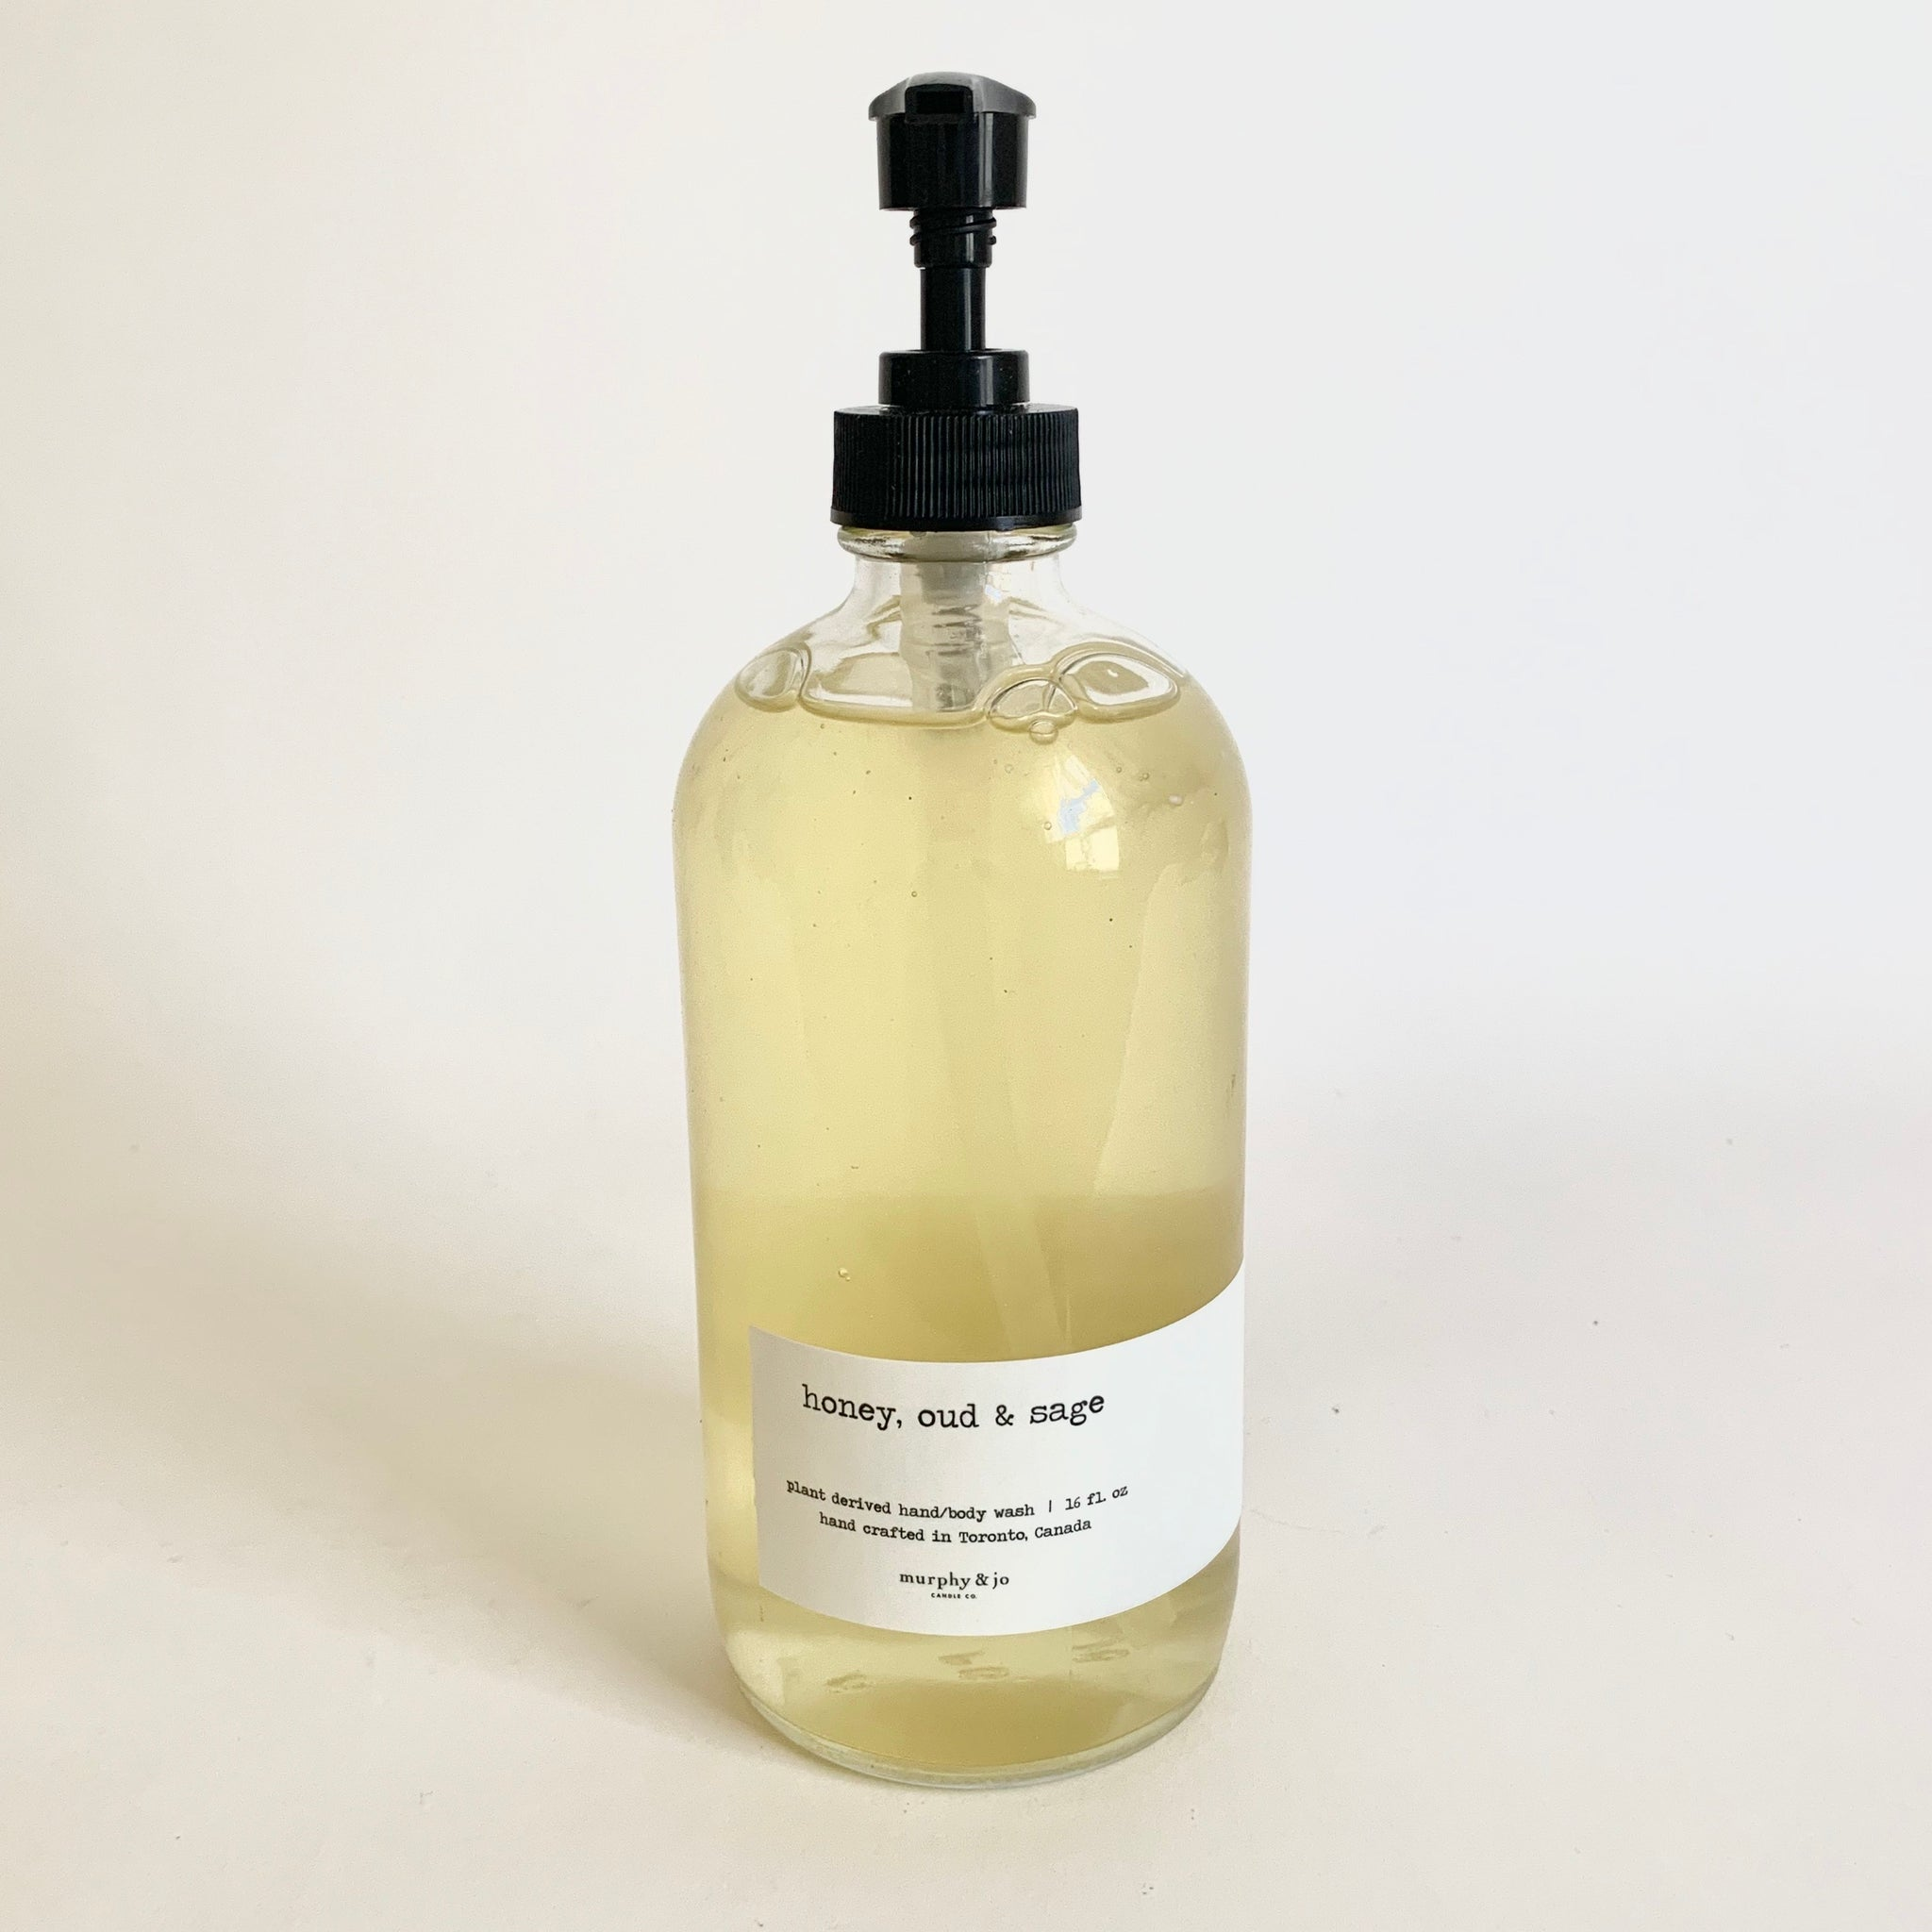 Handsoap 16oz. - Honey, Oud & Sage